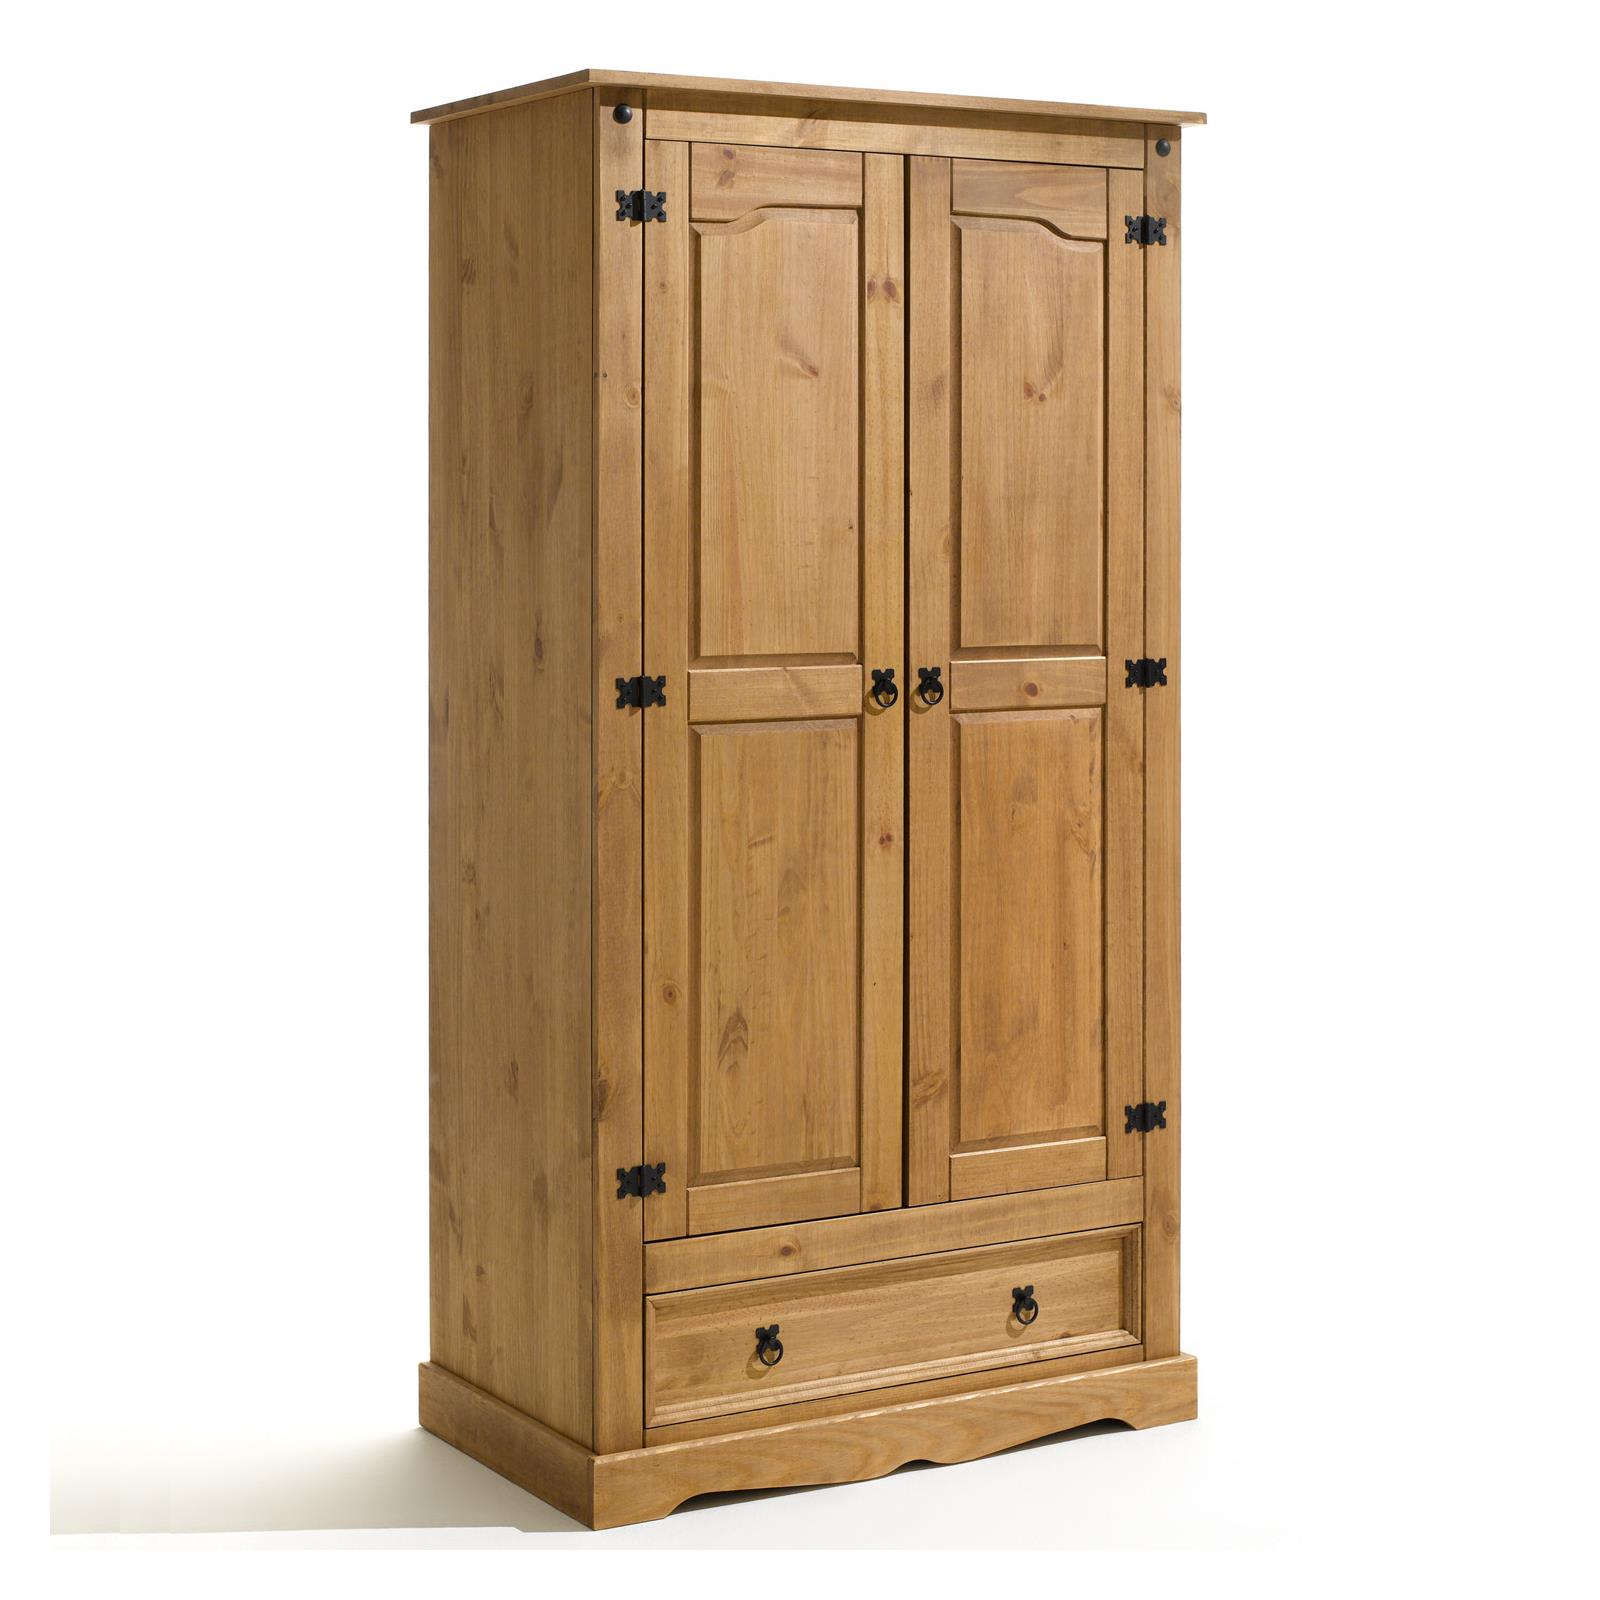 armoire en pin tequila style mexicain finition cir e mobil meubles. Black Bedroom Furniture Sets. Home Design Ideas